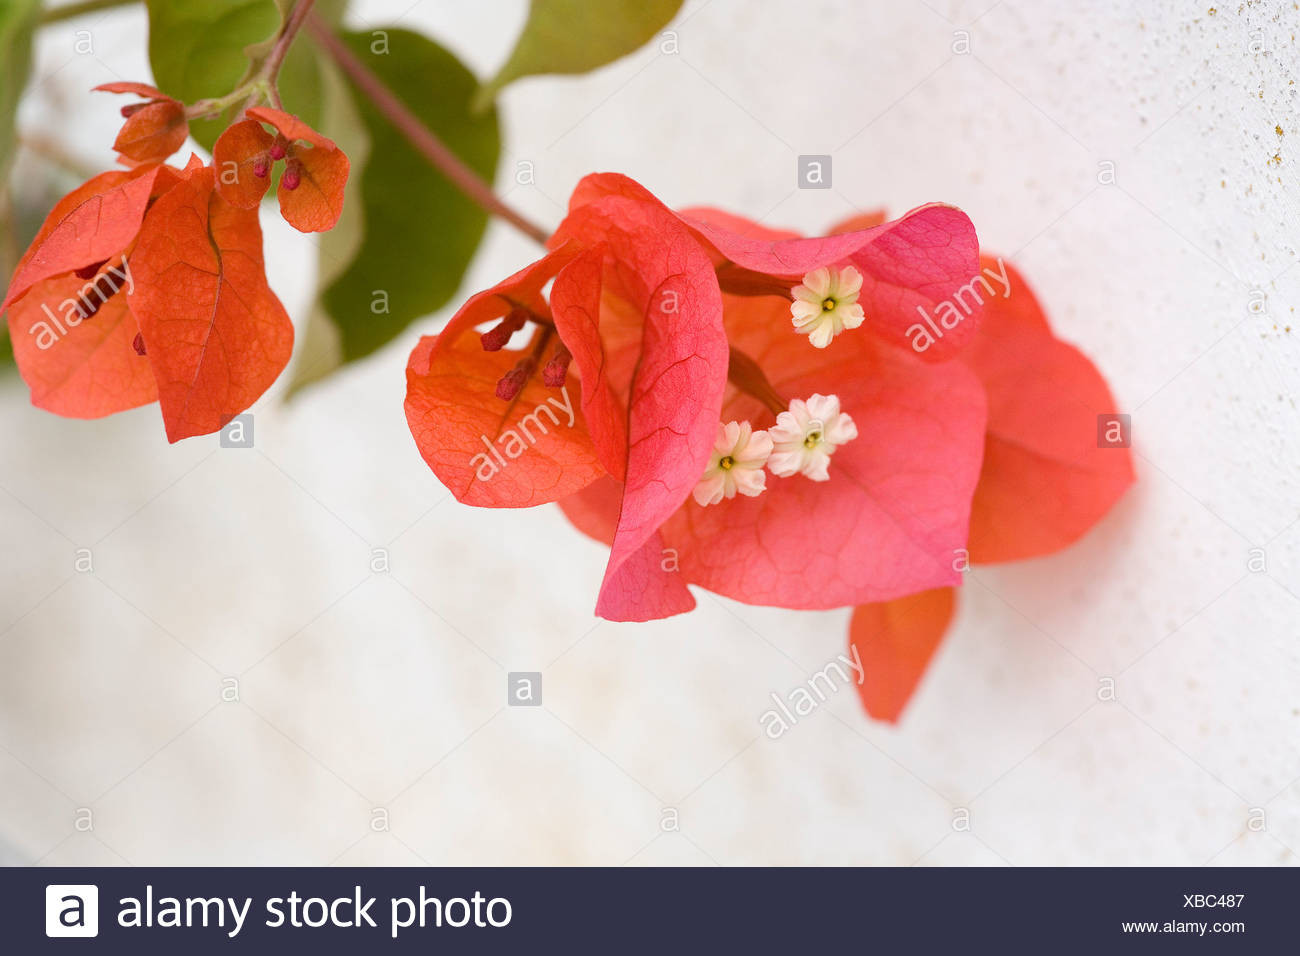 Detail of a Bougainvillea blossom - Stock Image